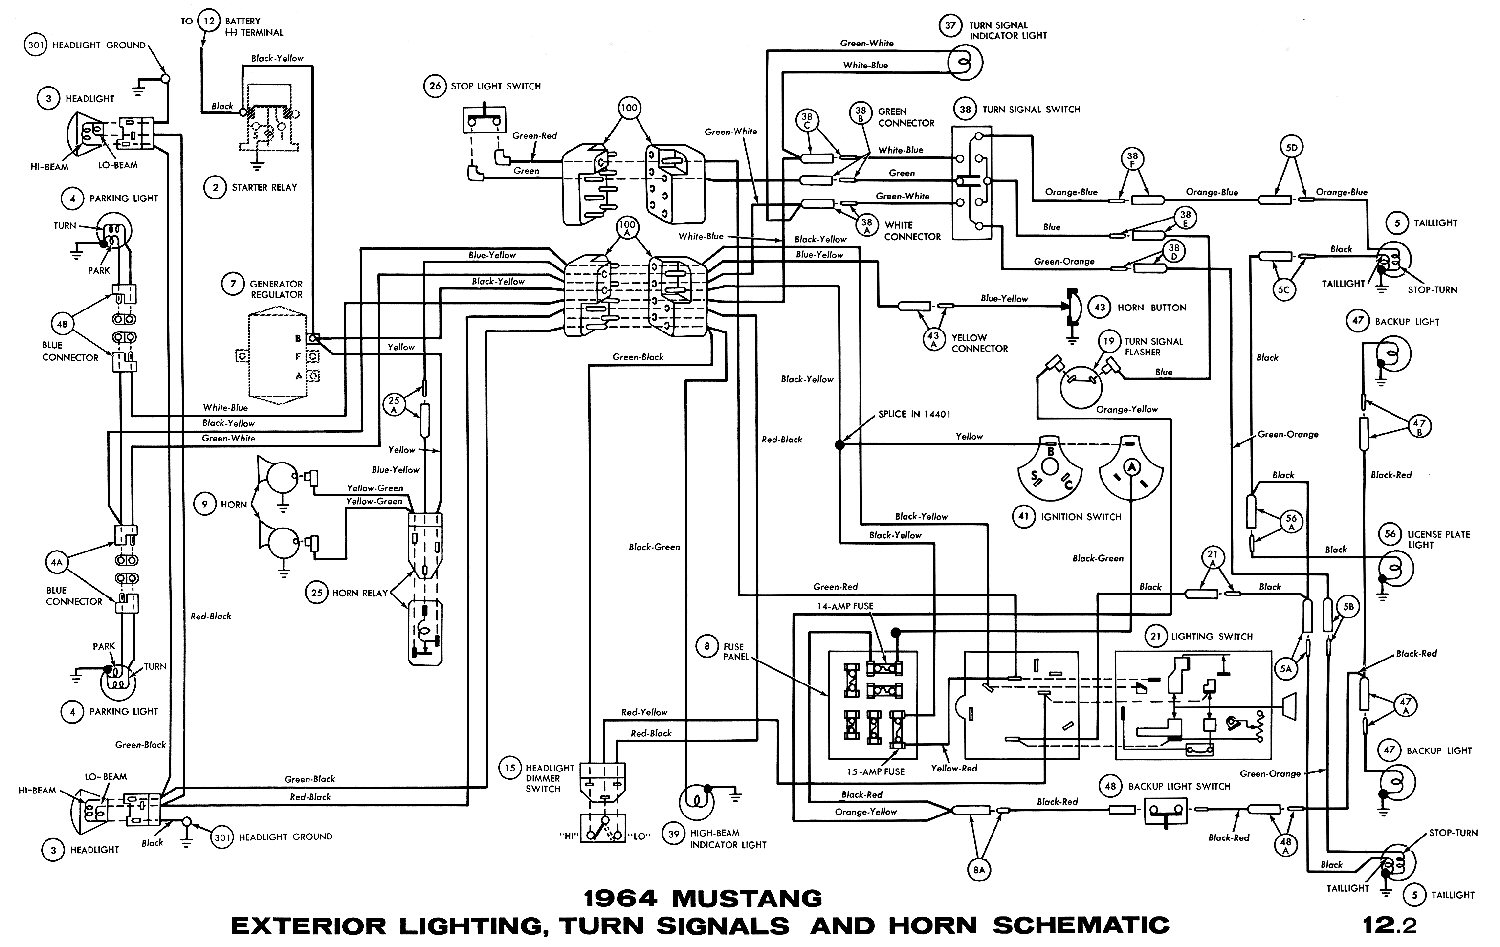 1964i 1964 mustang wiring diagrams average joe restoration 1966 mustang wiring diagrams electrical schematics at nearapp.co